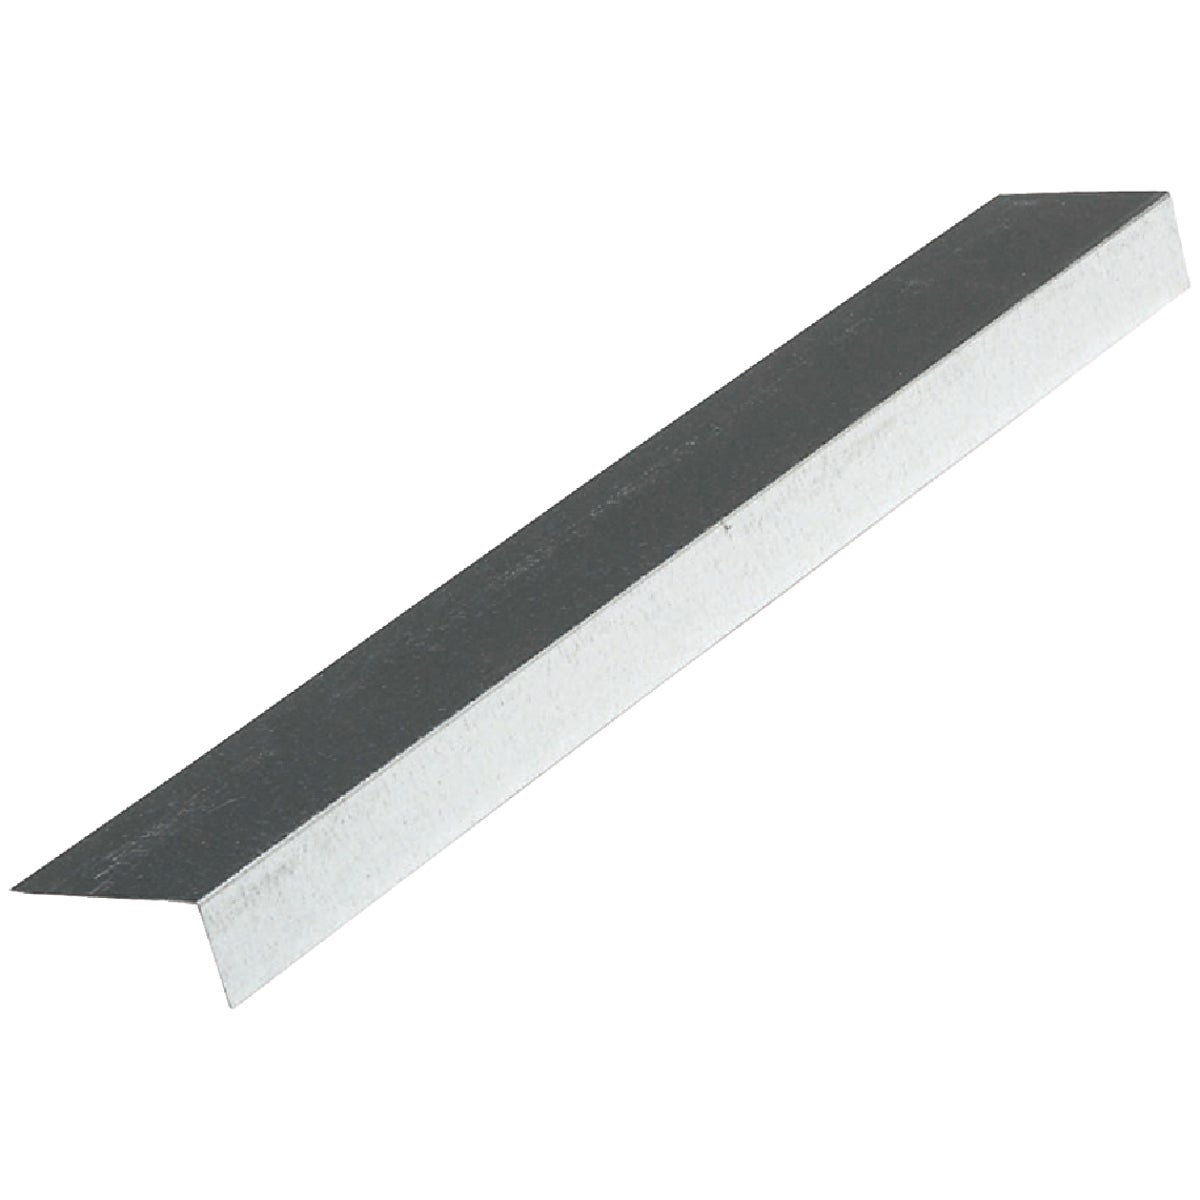 "1-1/2X1-1/2""X10'FLASHING - 516704 by Noll/norwesco Llc"